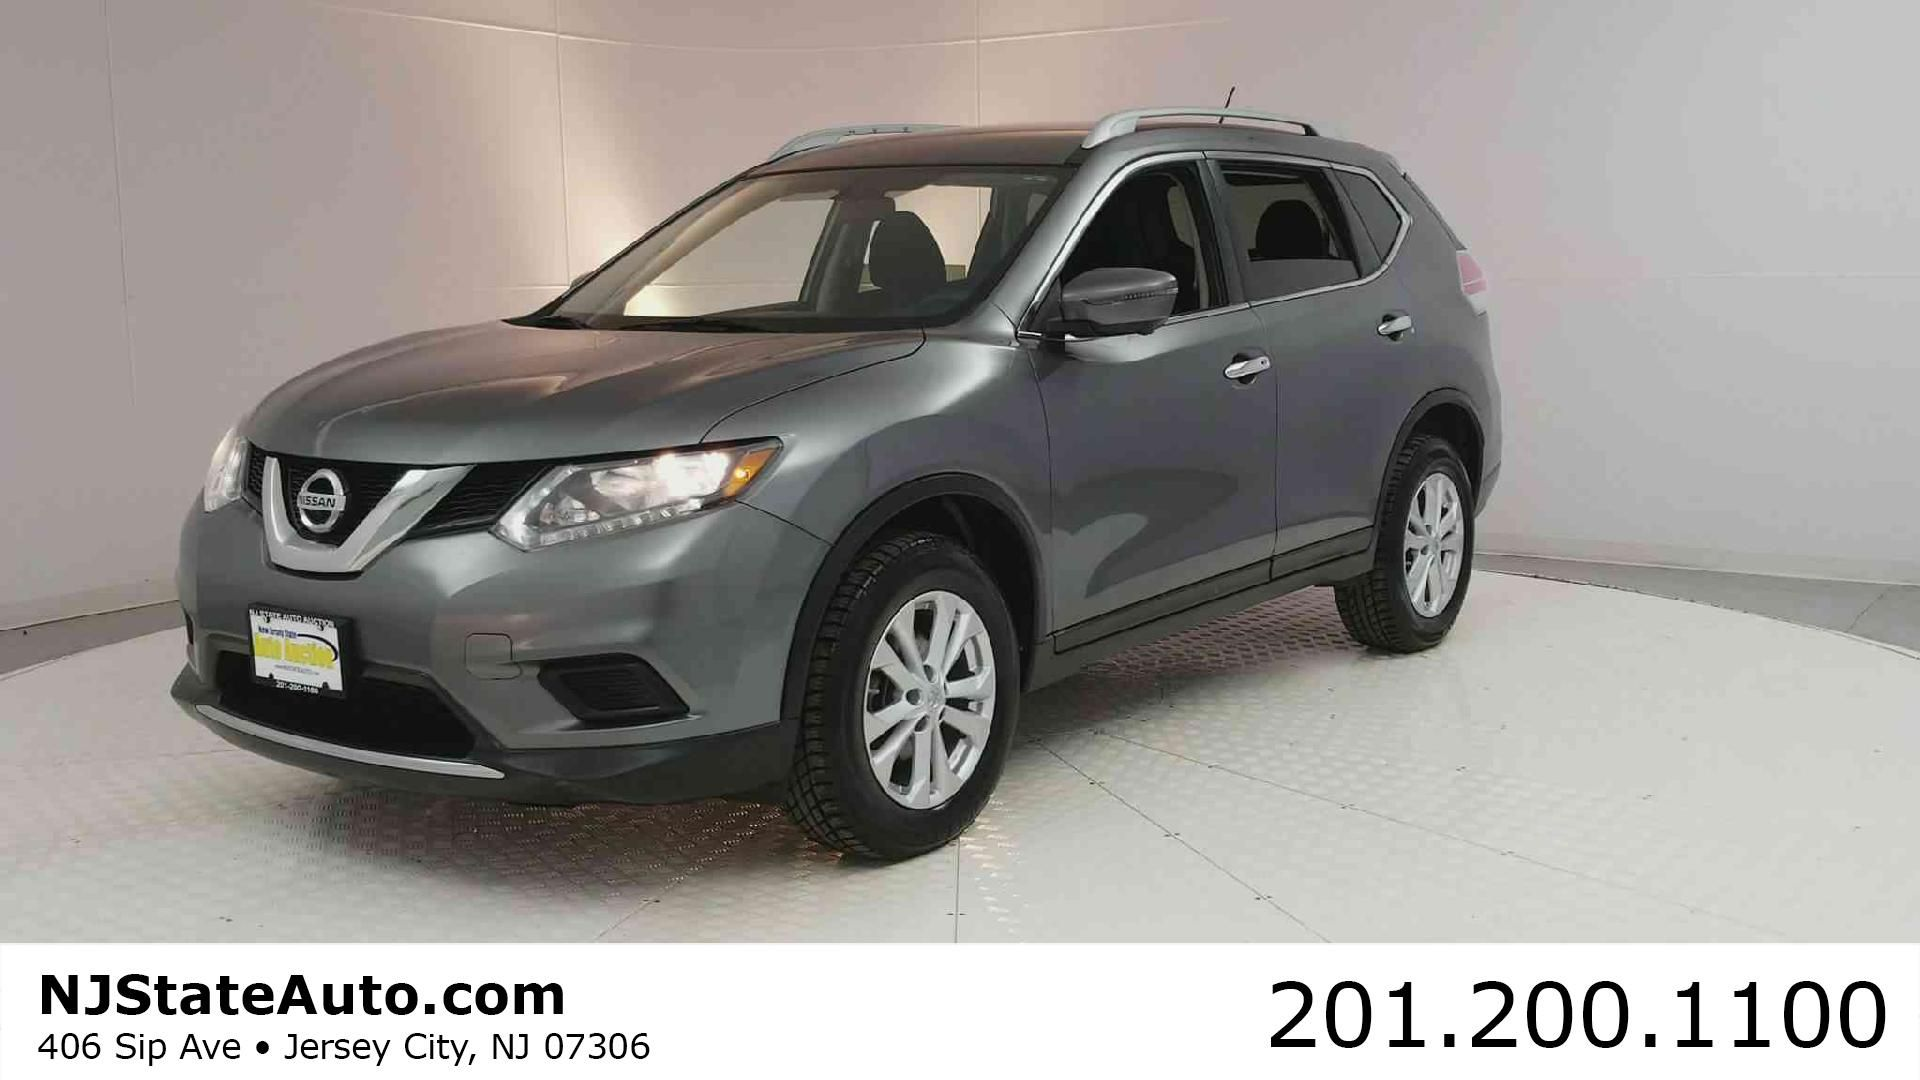 Inspirational Used Cars for Sale with Free Carfax Check